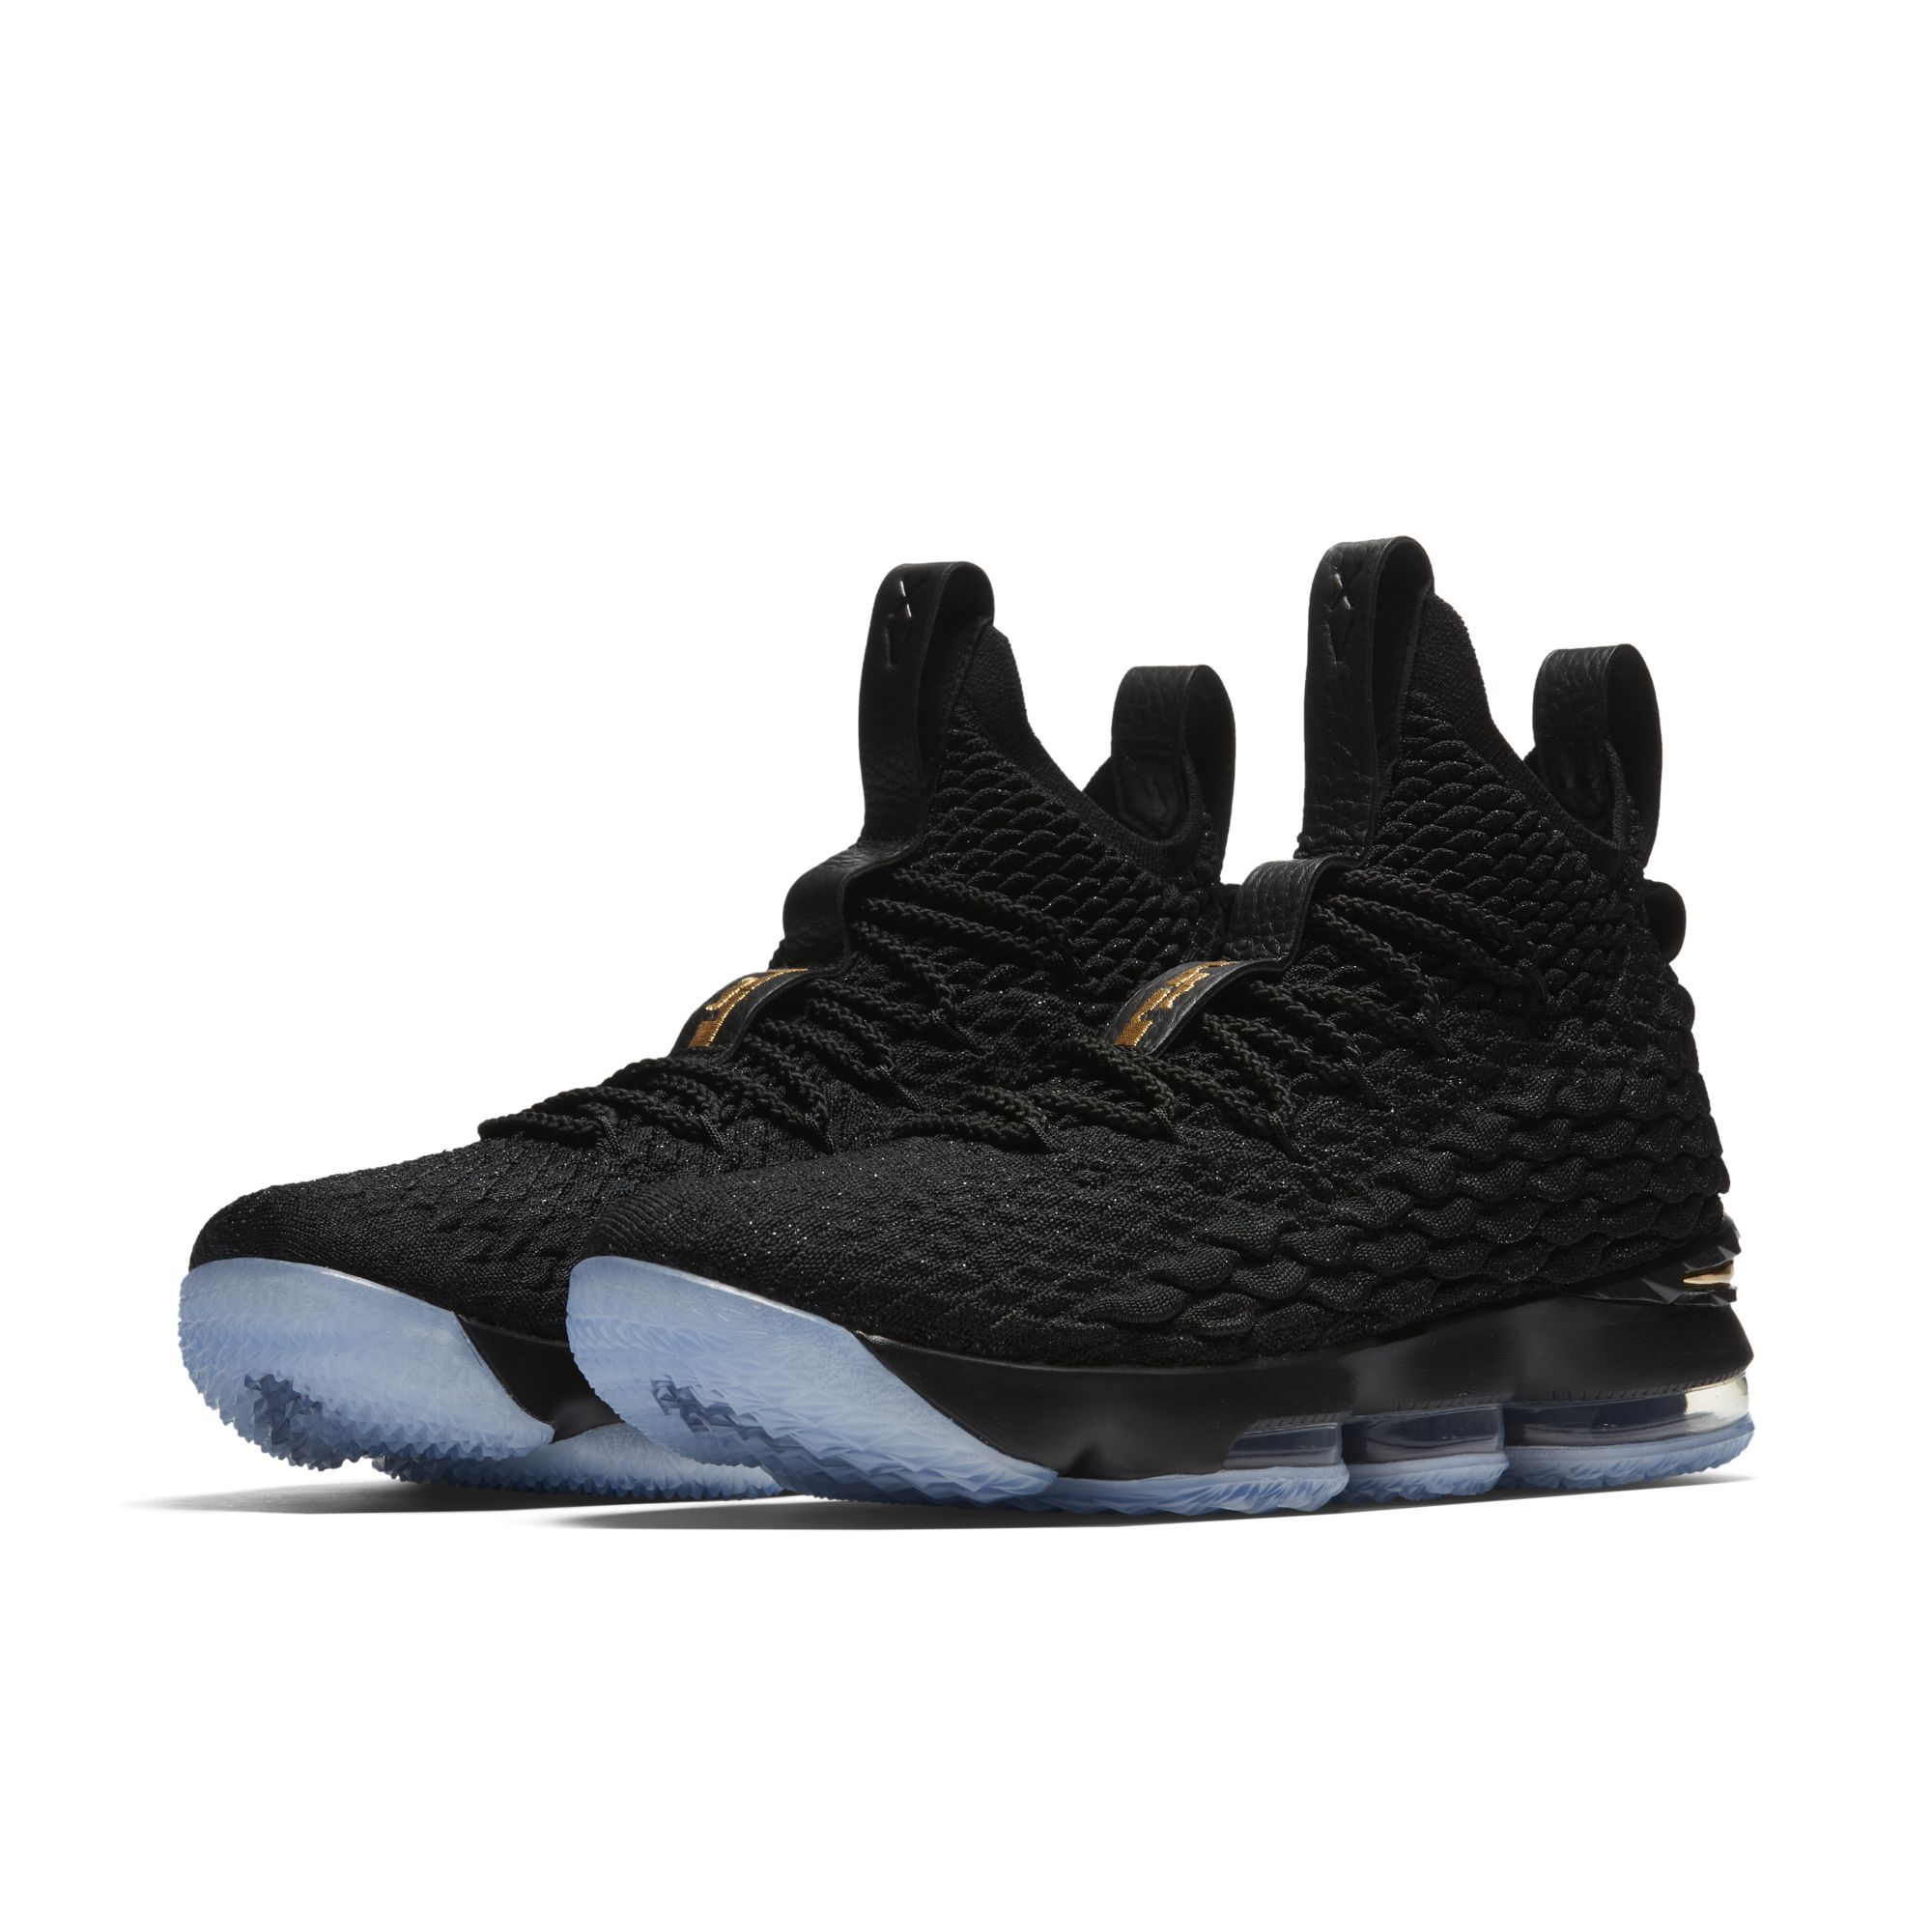 pretty nice 267f4 b3e3b The Nike LeBron 15 'Black/Gold' Releases in One Week ...